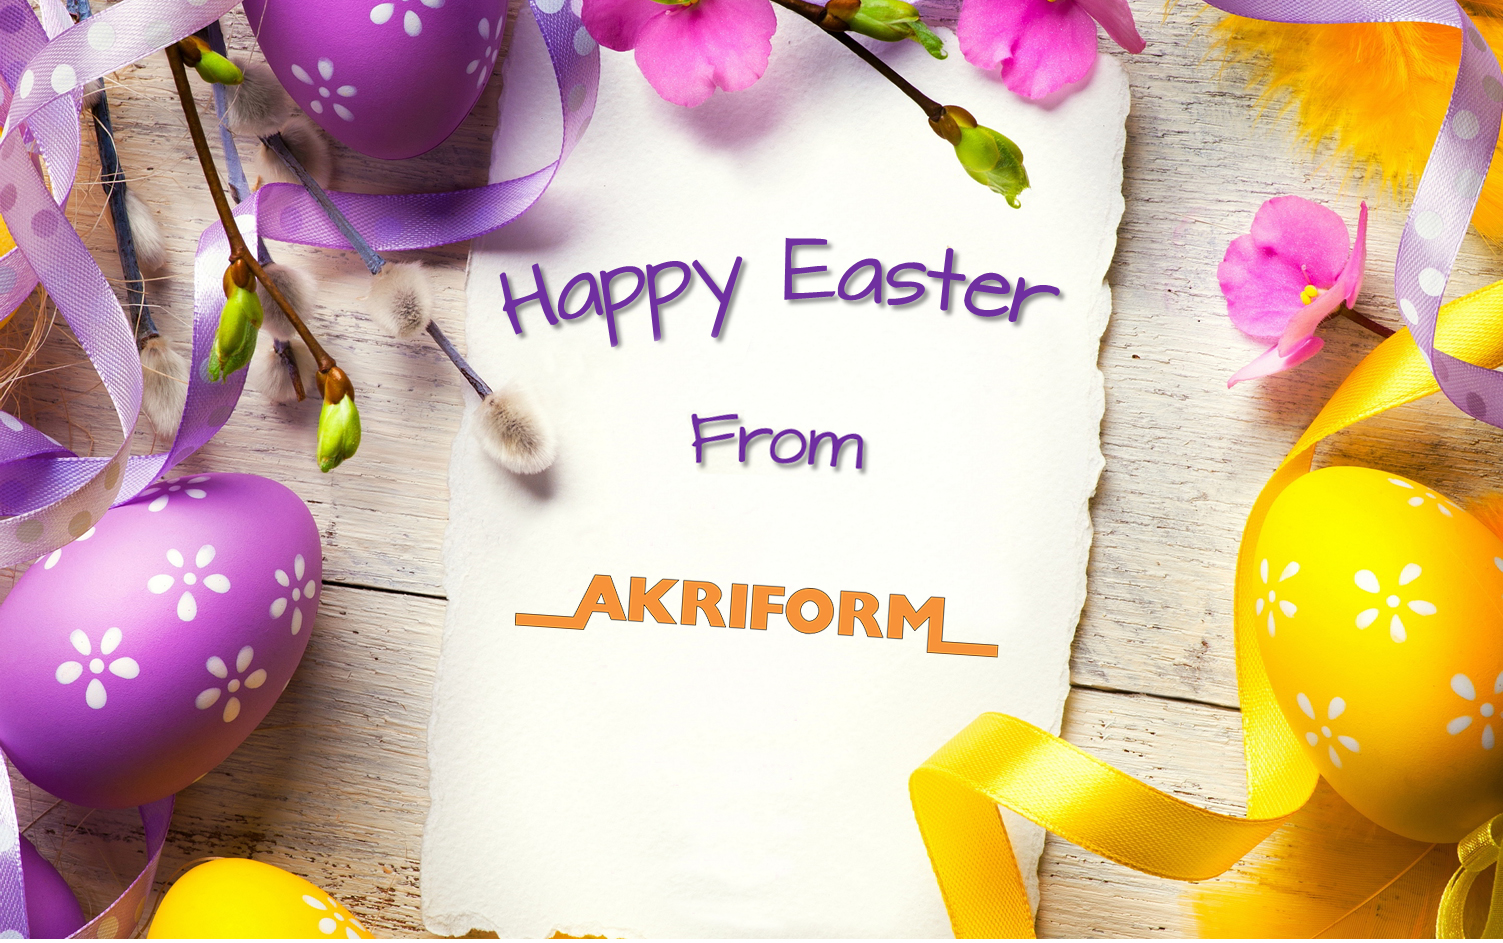 Happy Easter from Akriform